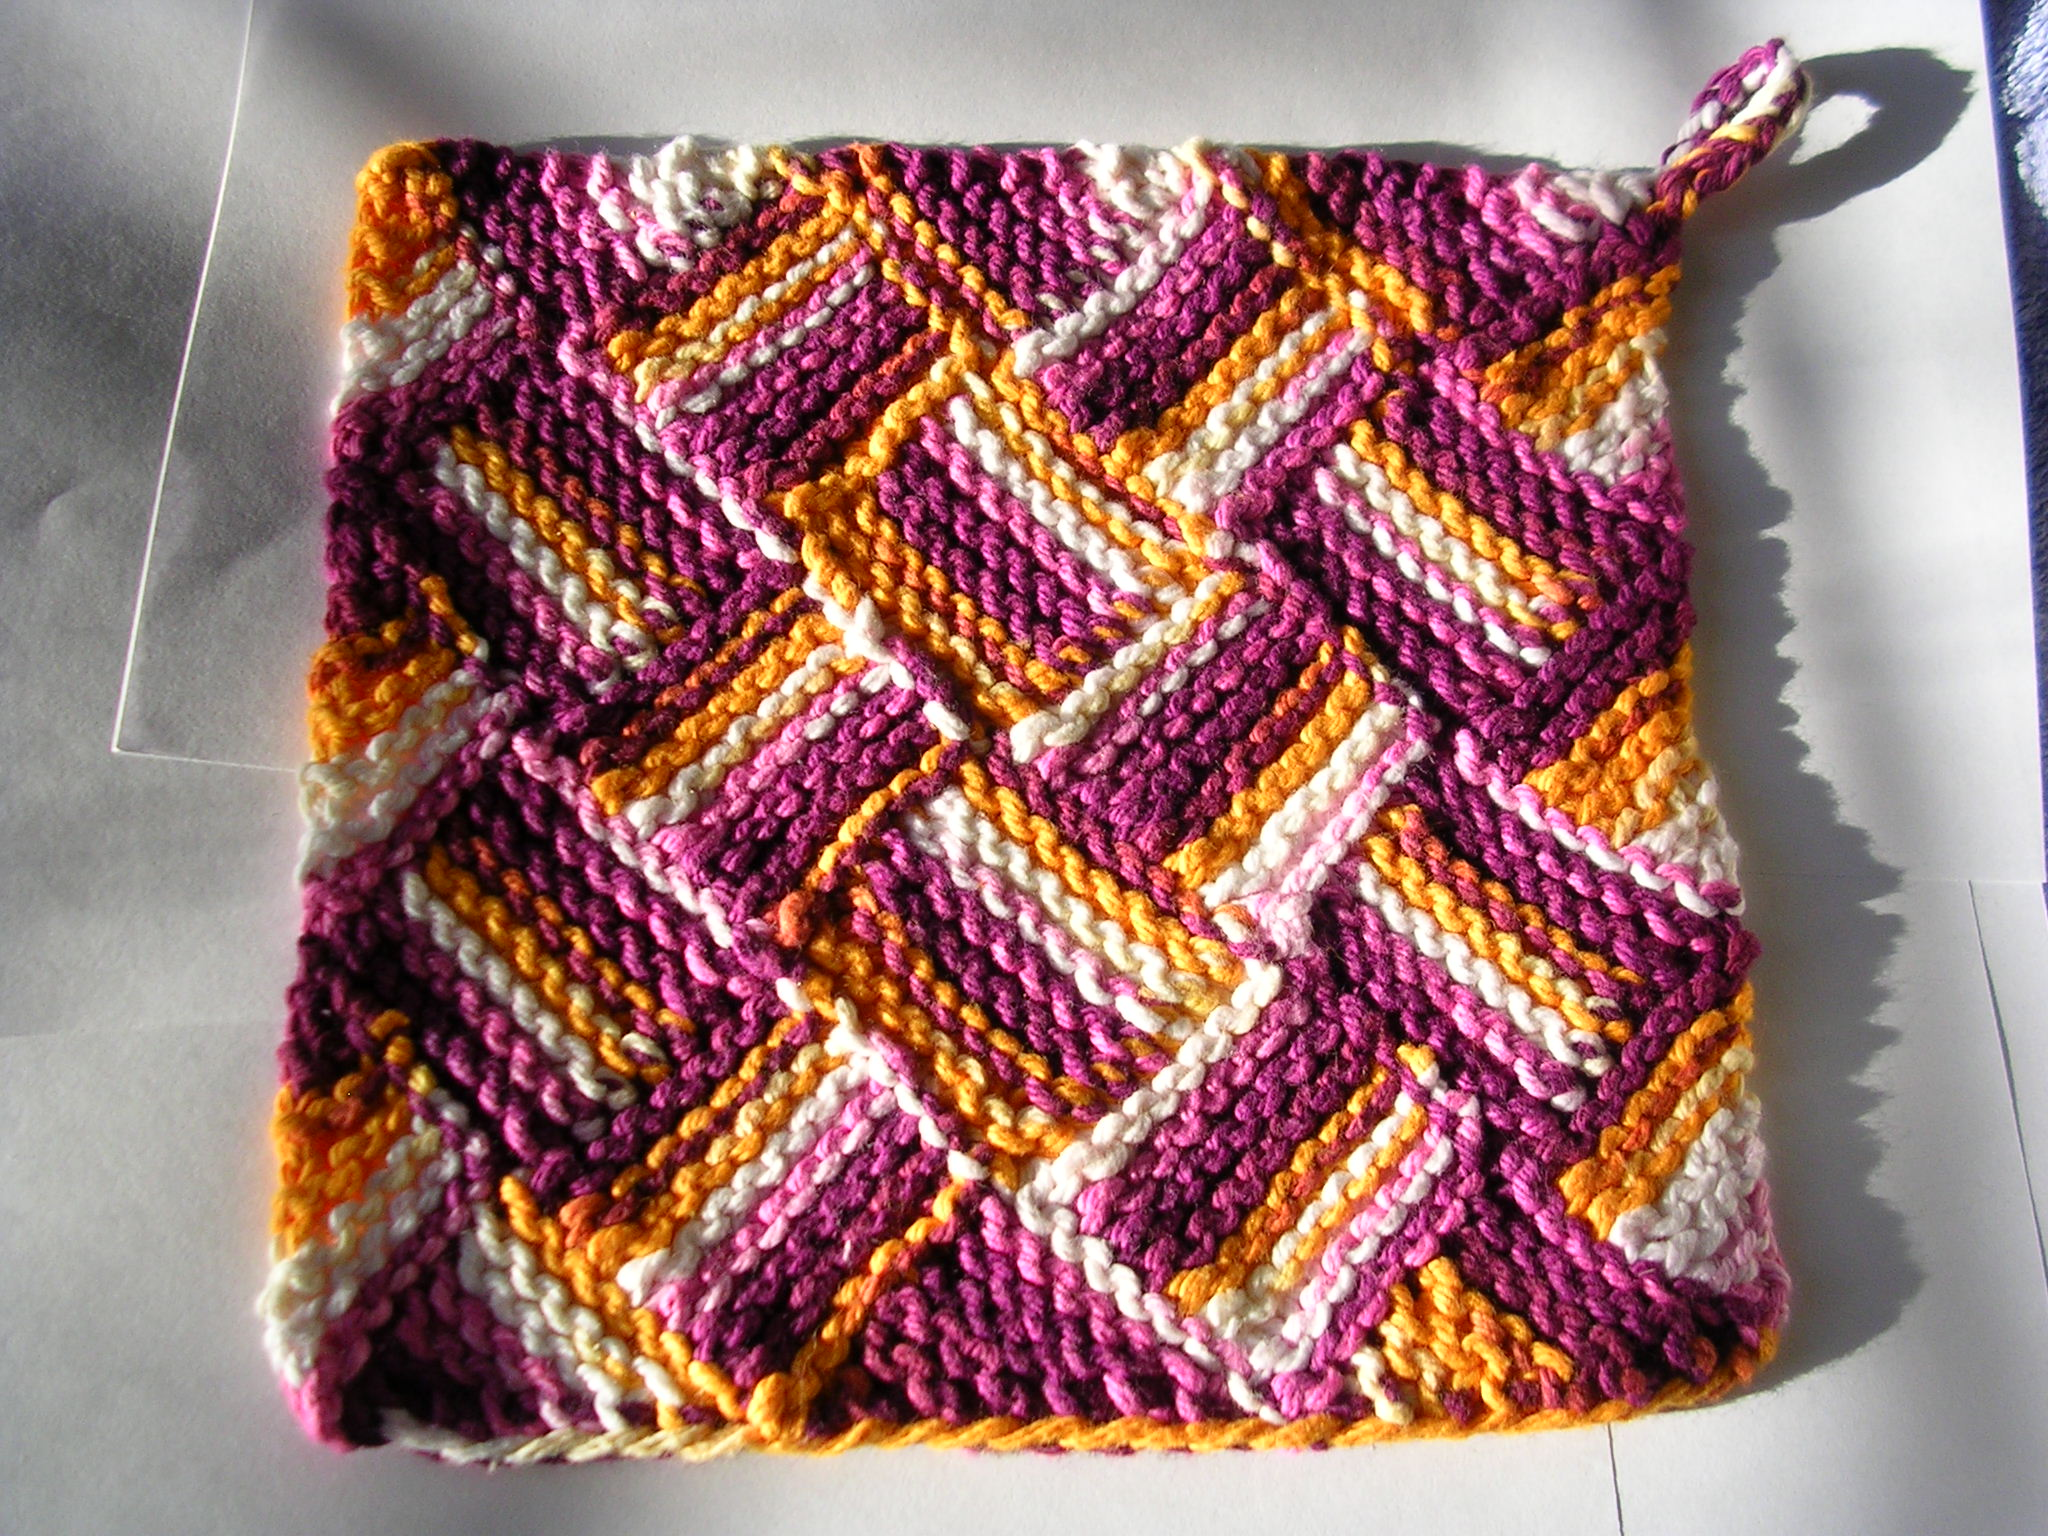 Knitting Pattern Using Cotton Yarn : garterlac dish cloth sg-creations